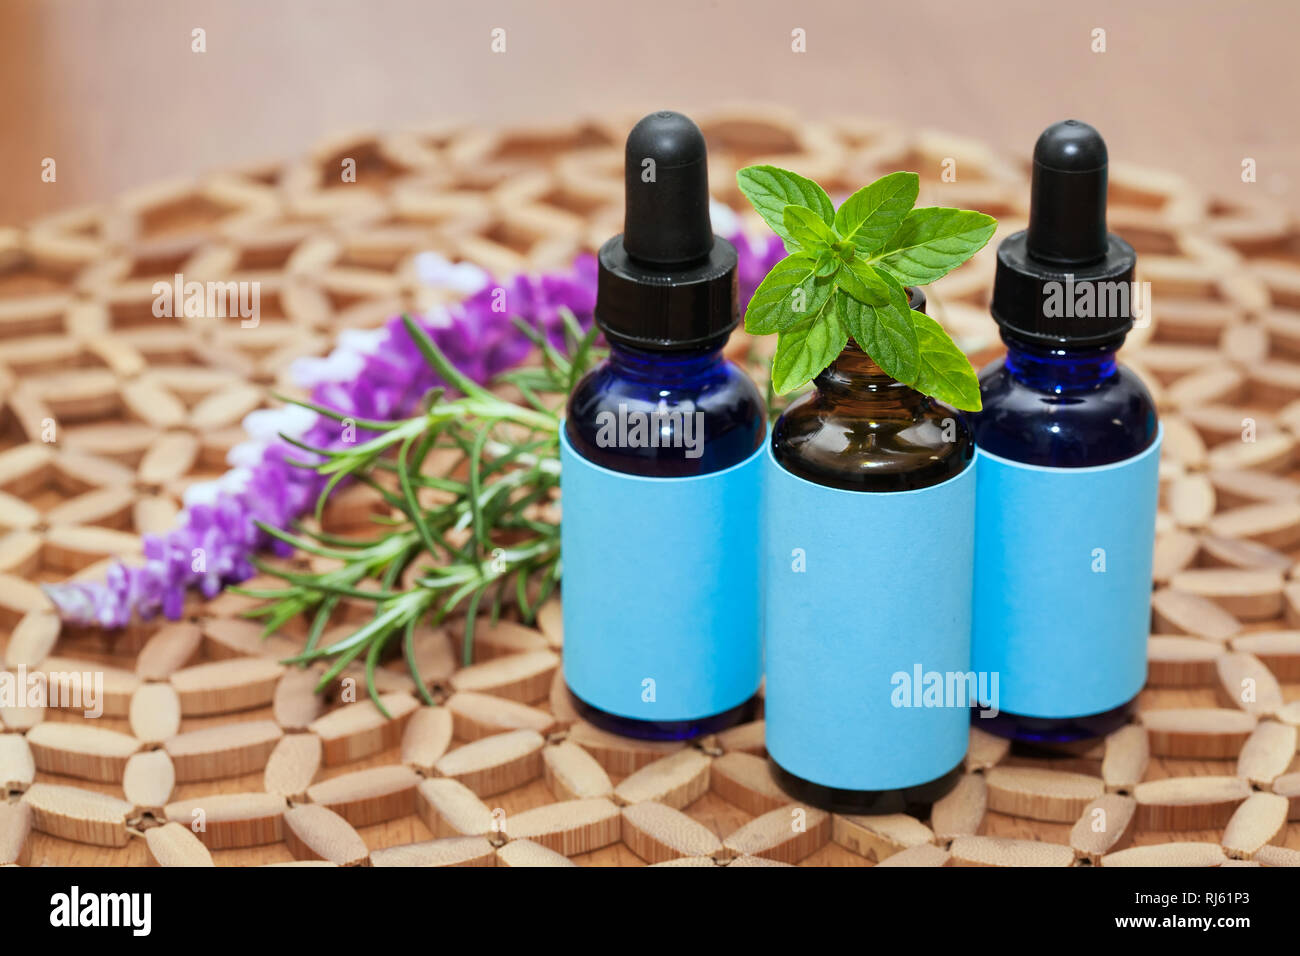 Alternative or naturopathic medicine treatment in three glass bottles with droppers, mint, lavender and rosemary plants. - Stock Image